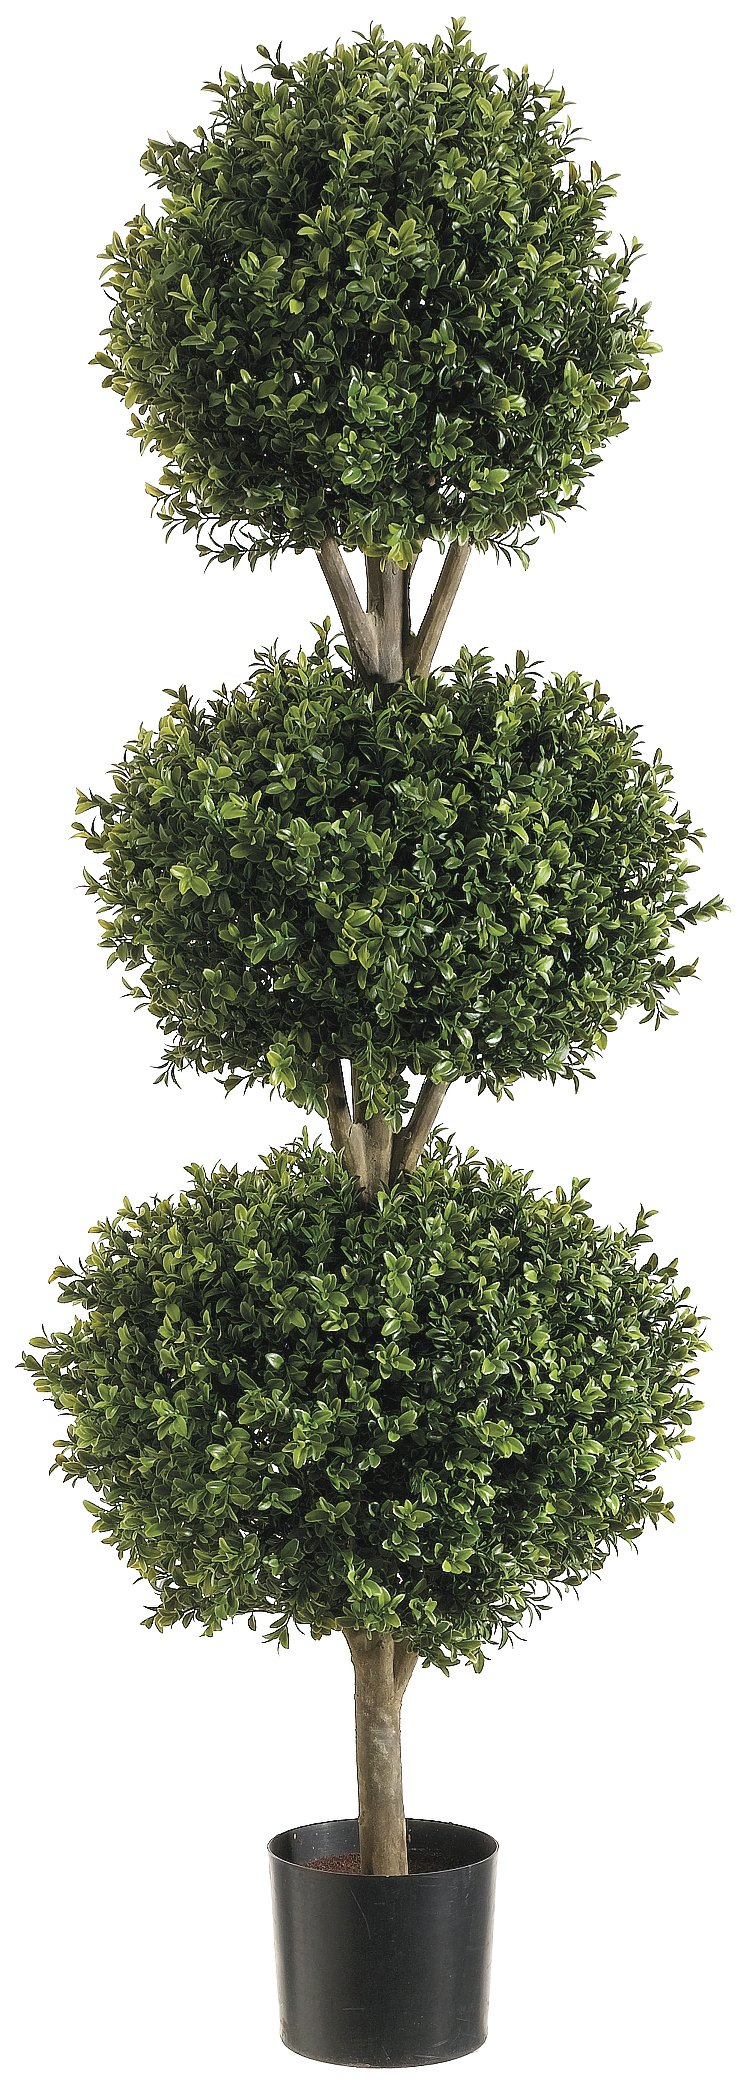 Silk Decor 4-Feet Tri Ball Boxwood Topiary Plant, Green/Two-tone by Silk Decor